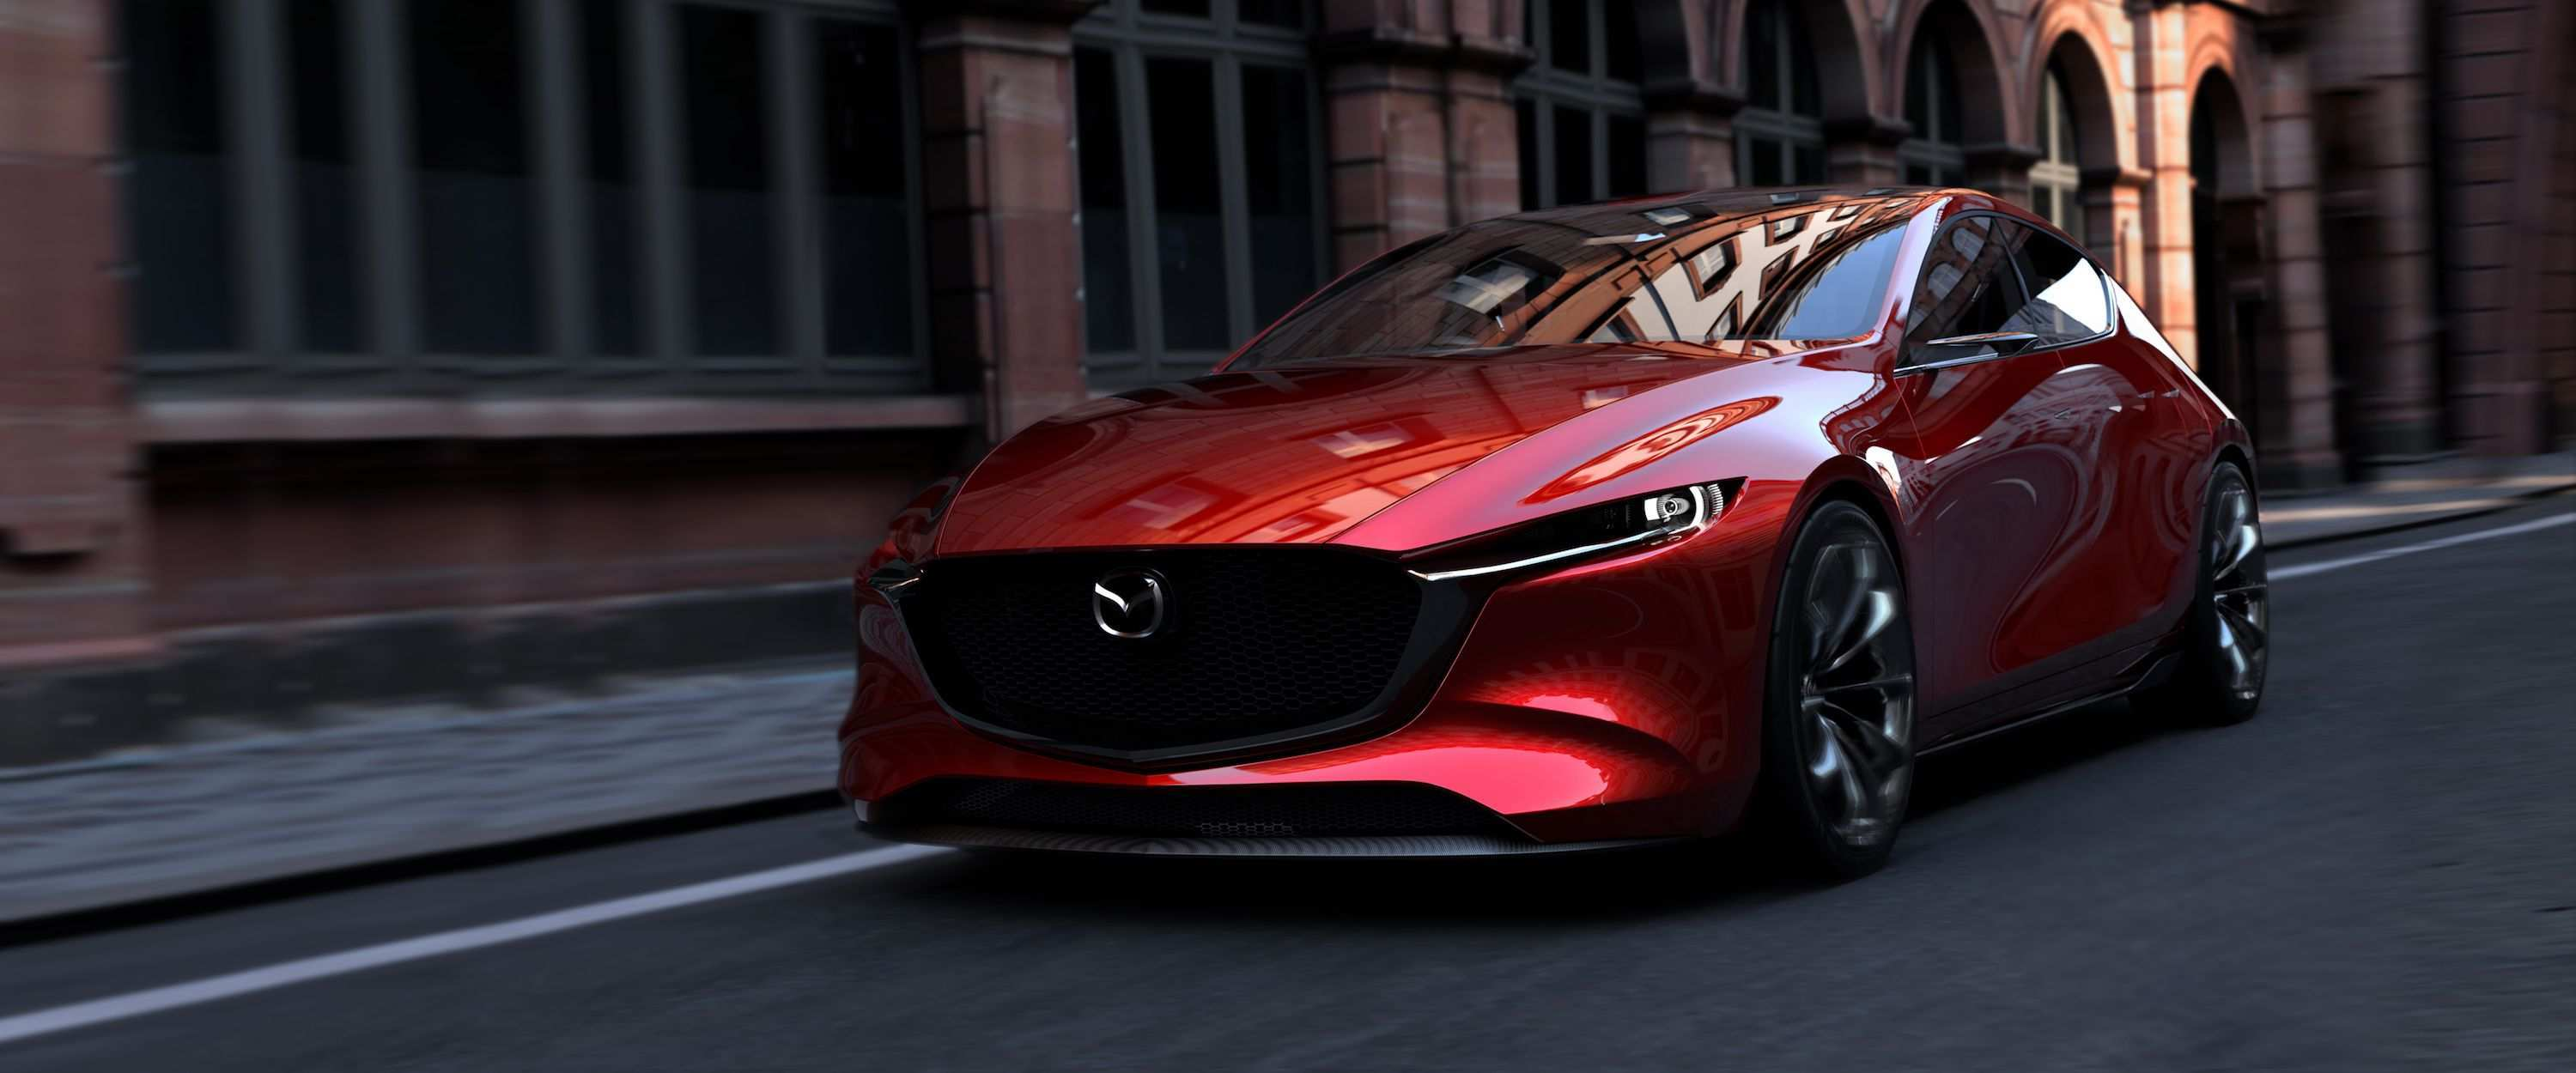 19 All New 2020 Mazda Lineup New Concept for 2020 Mazda Lineup